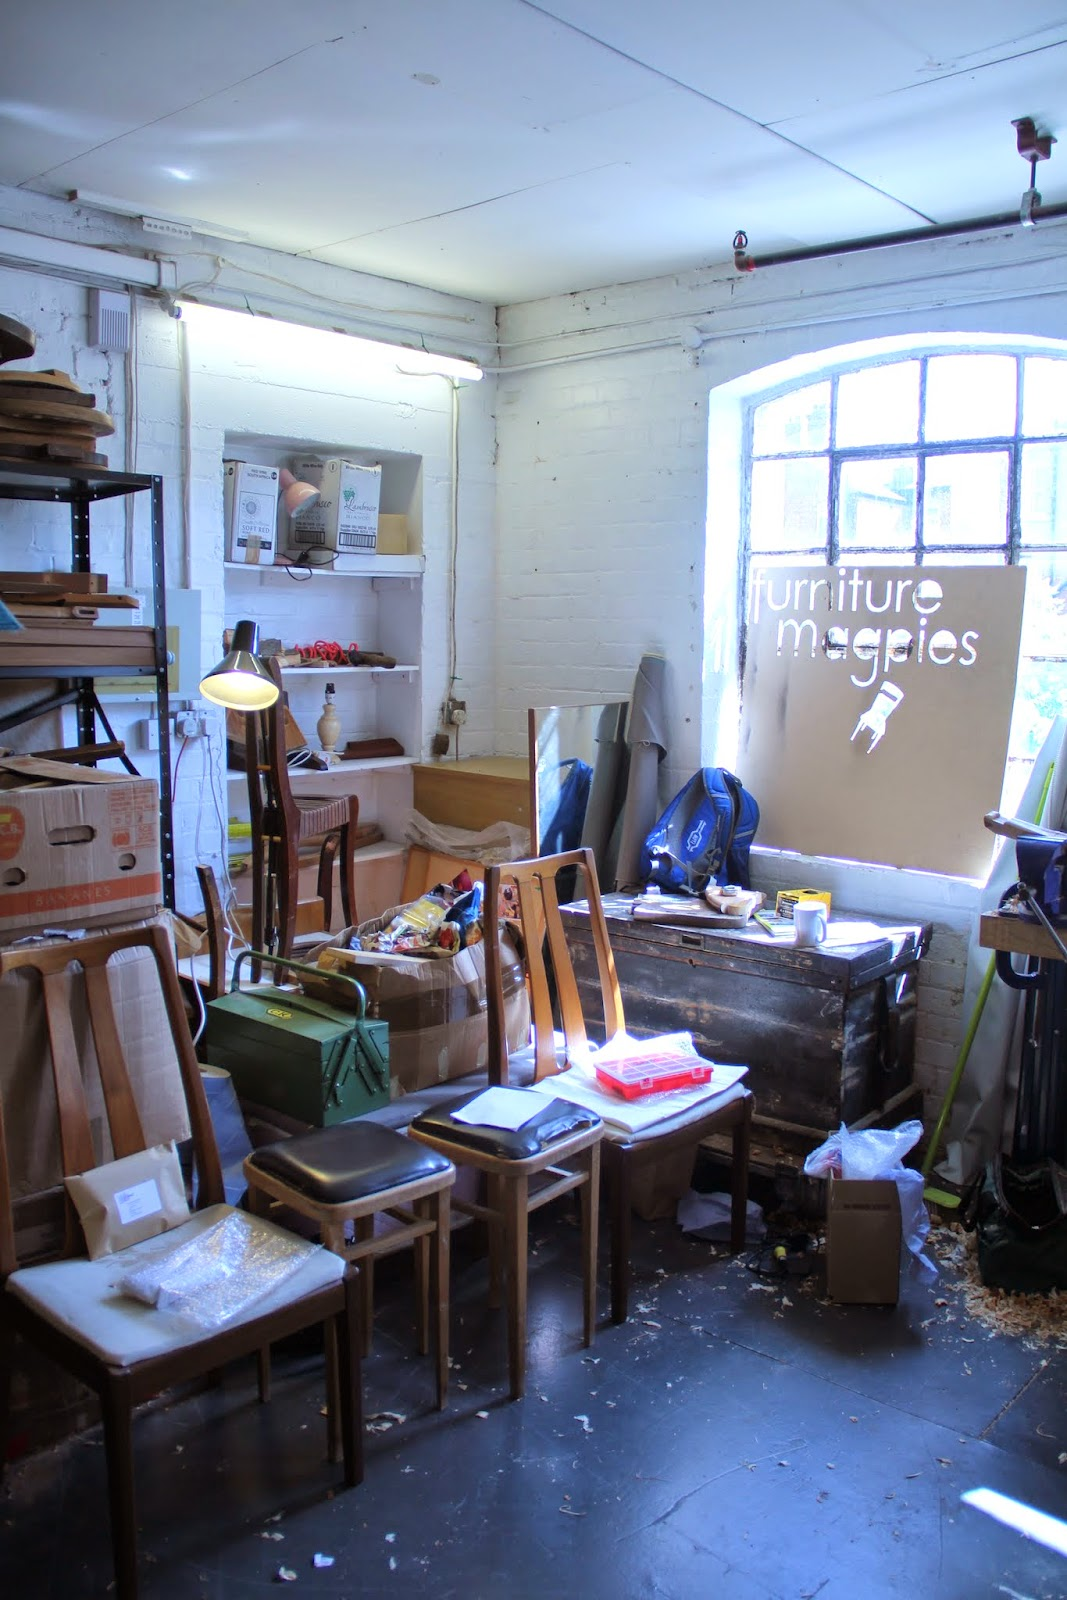 furniture magpies, commercial square studios, trend daily blog, caroline davis